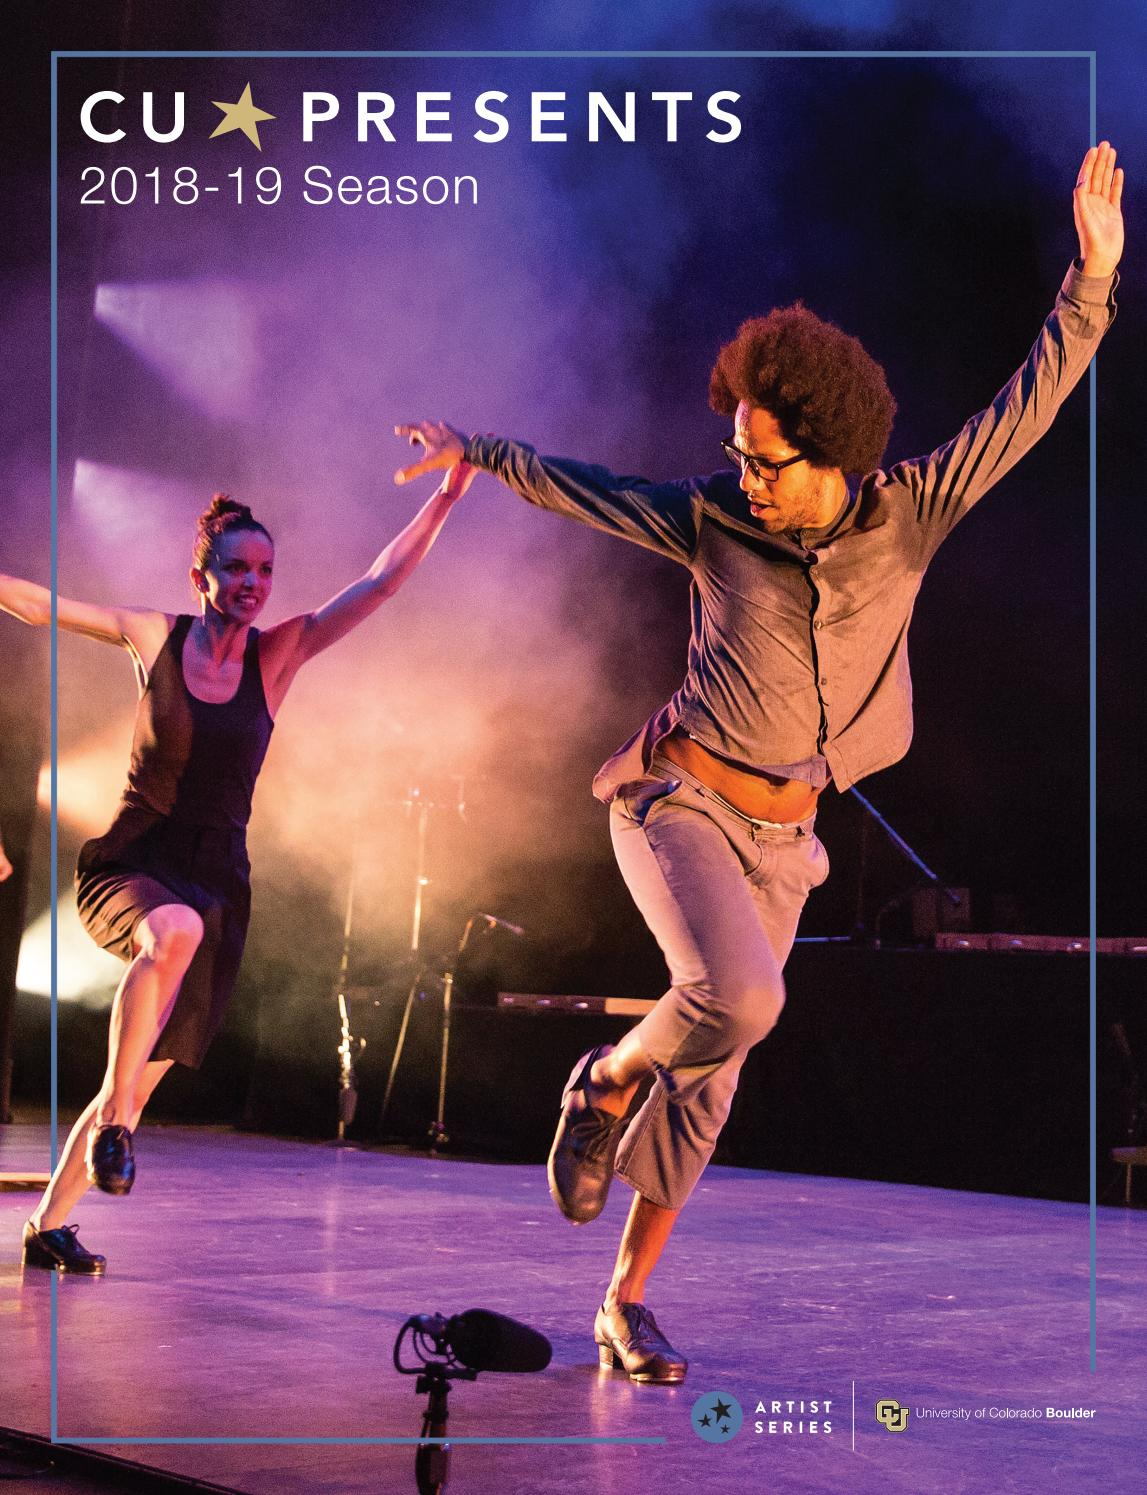 CU Presents Magazine Spring 2019, April 6, 2019 by The